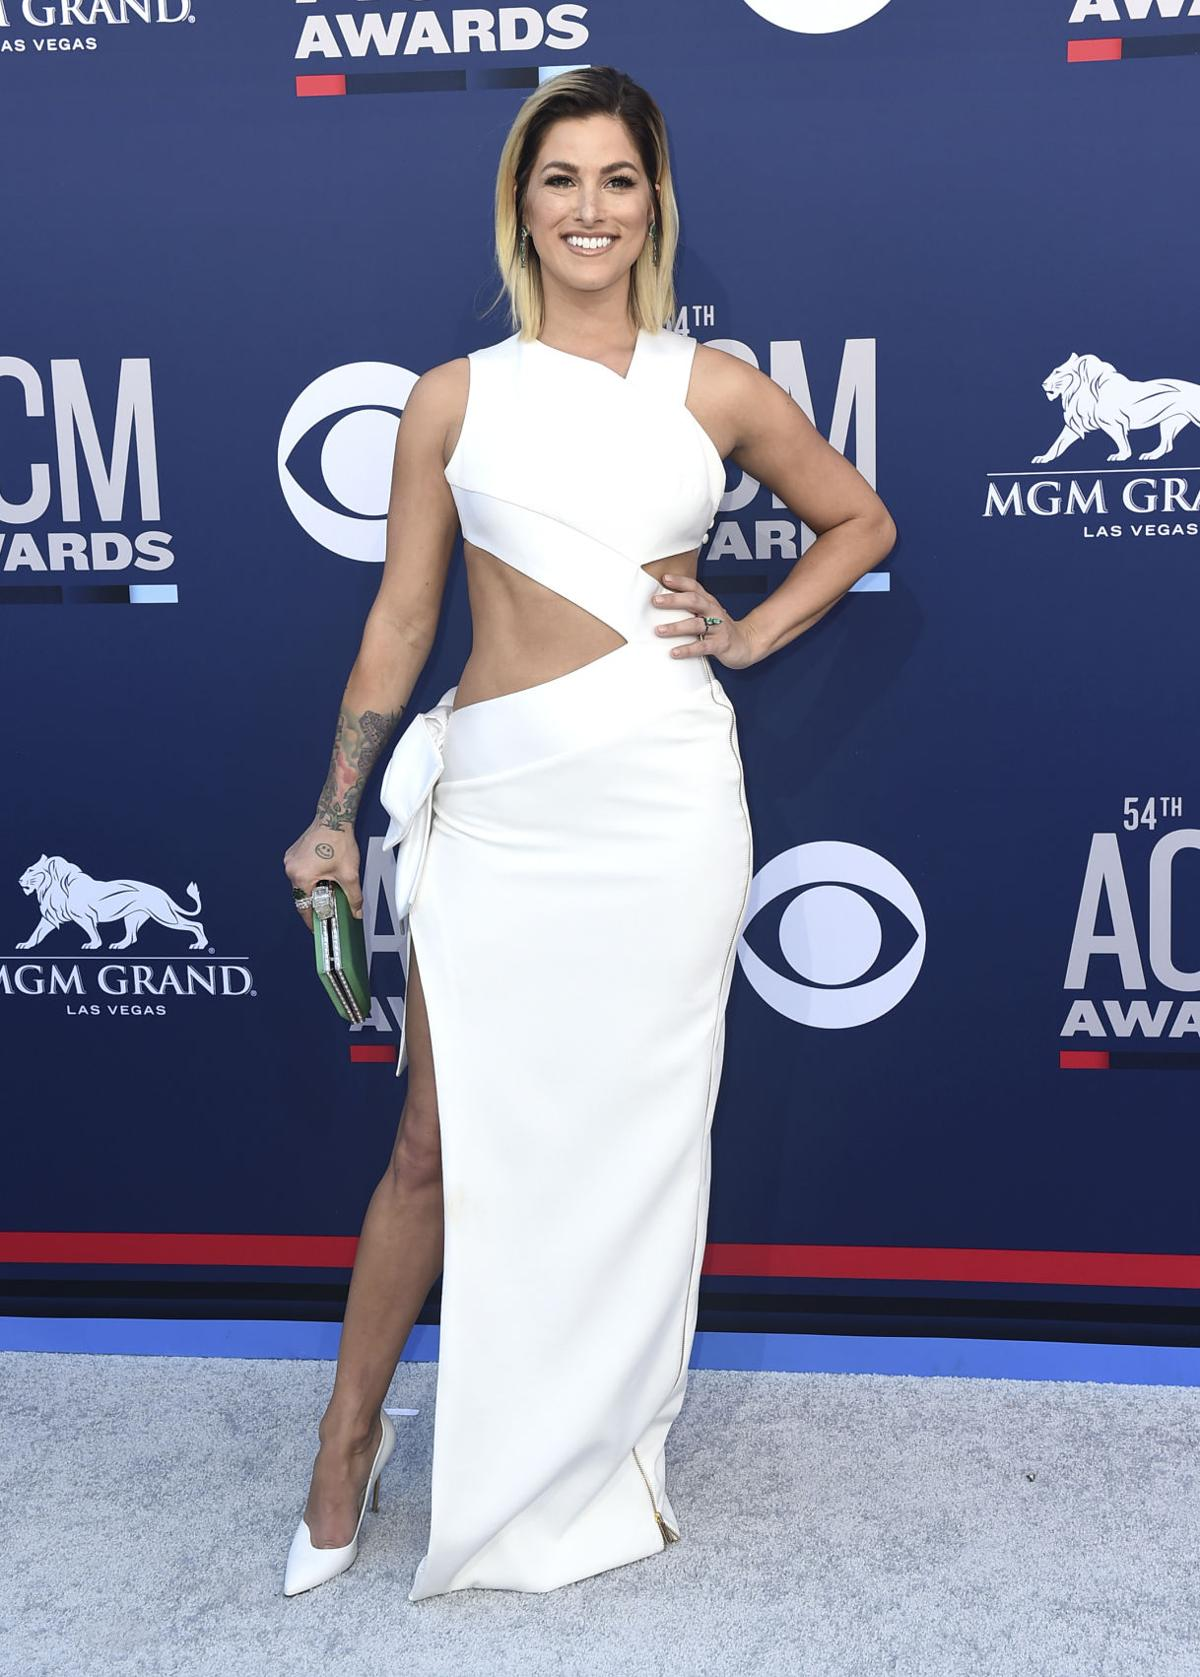 b57b9c22343b3 Photos  Scenes from the red carpet at the 54th Annual ACM Awards ...